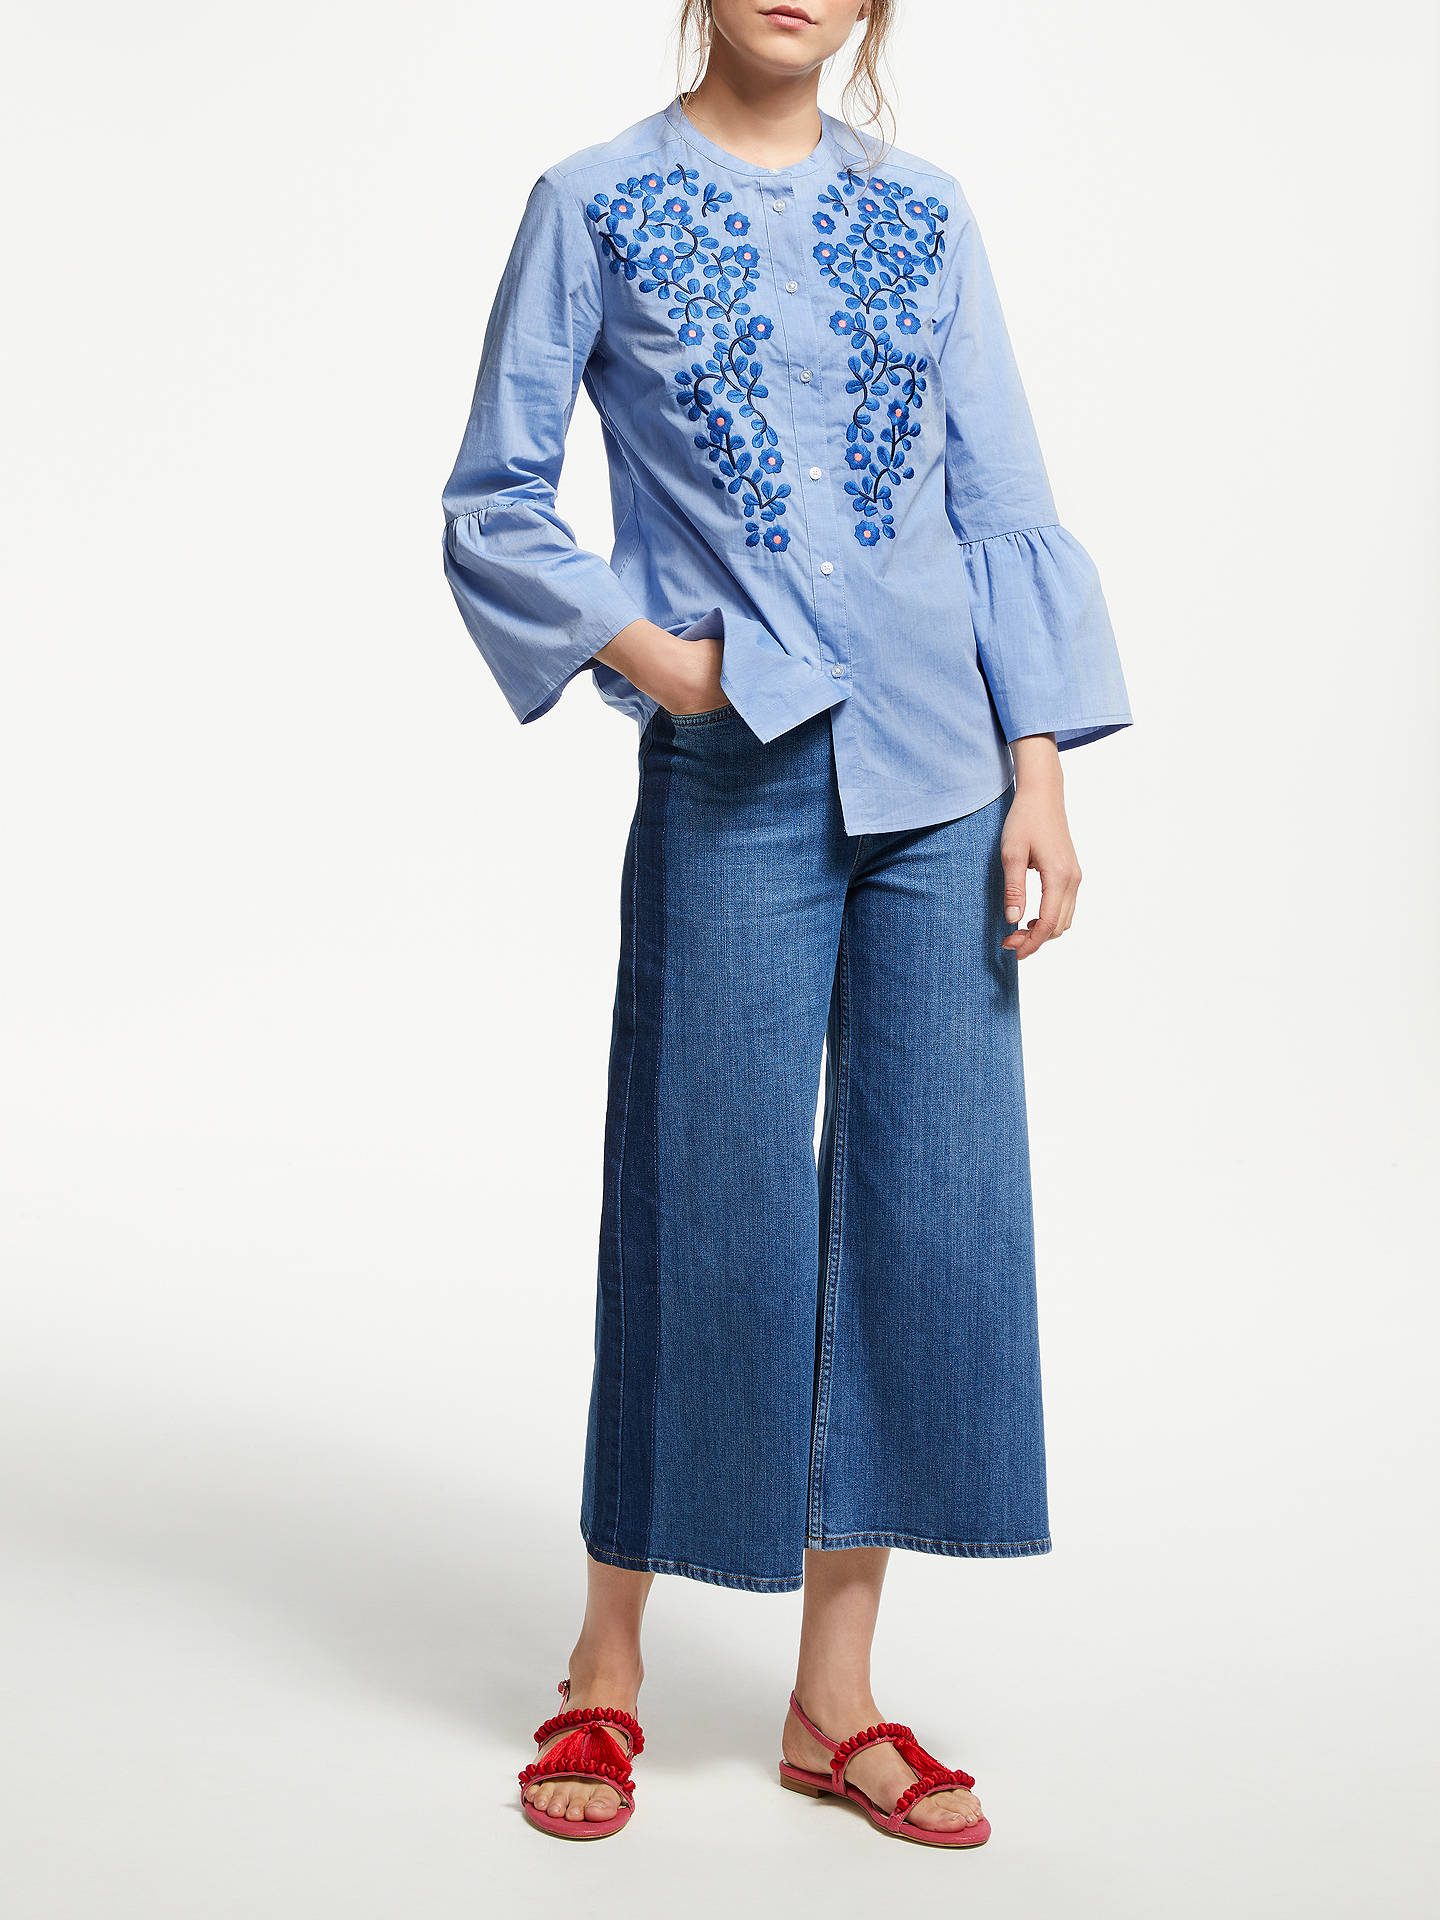 BuyBoden Embroidered Bell Sleeve Shirt, Chambray, 8 Online at johnlewis.com